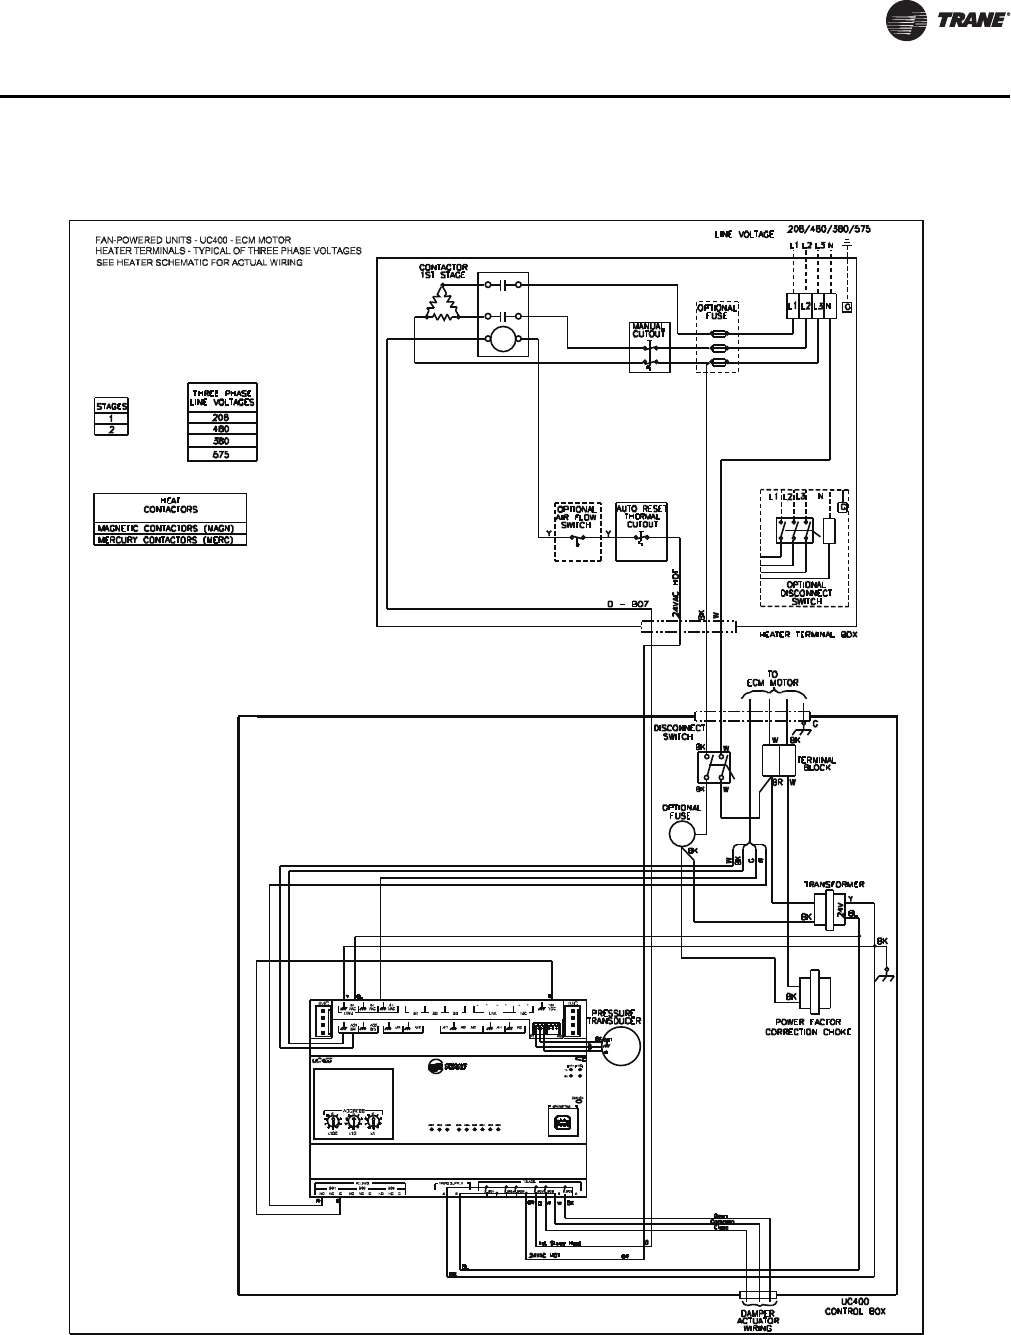 hight resolution of trane round in out installation and maintenance manual vav svx07a envav svx07a en 93 wiring diagrams